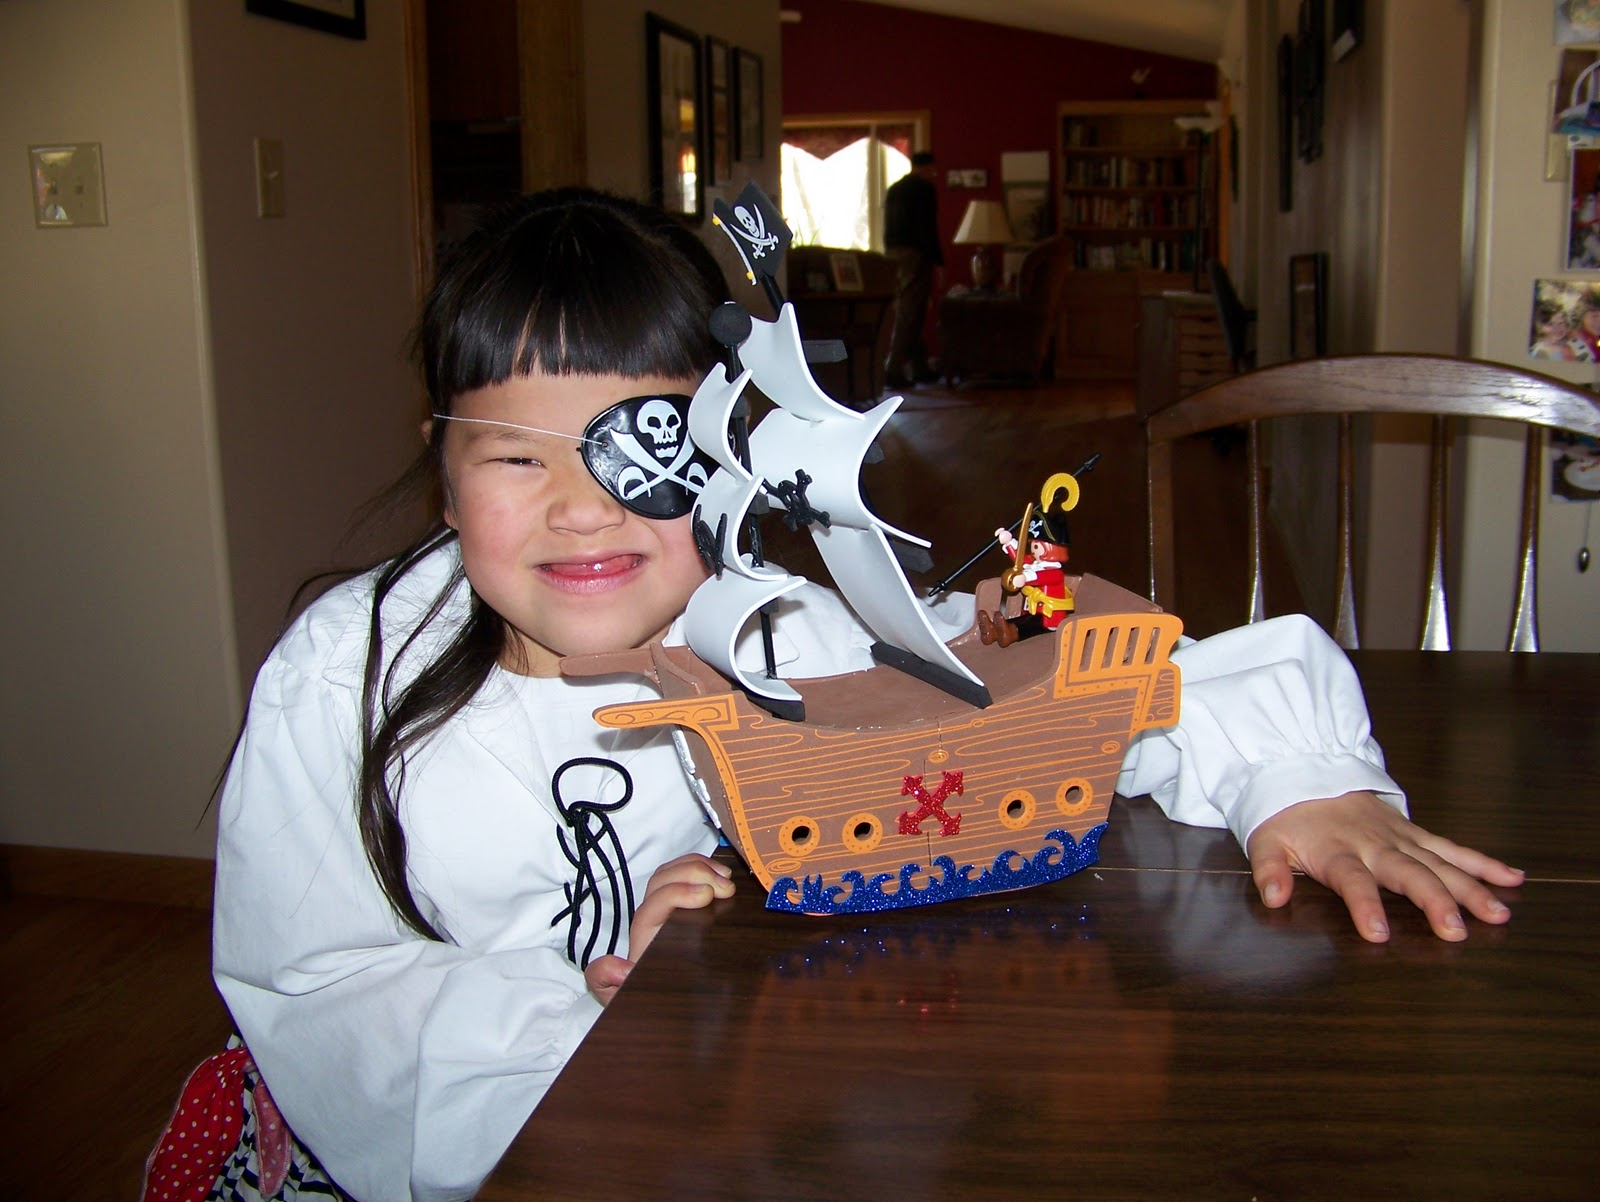 Katherine wanted a pirate party and insisted on wearing her pirate costume. Last night we made a pirate ship to serve as a decoration.  sc 1 st  Red Thread Notes & Red Thread Notes: Almost 7 Year Old Pirate